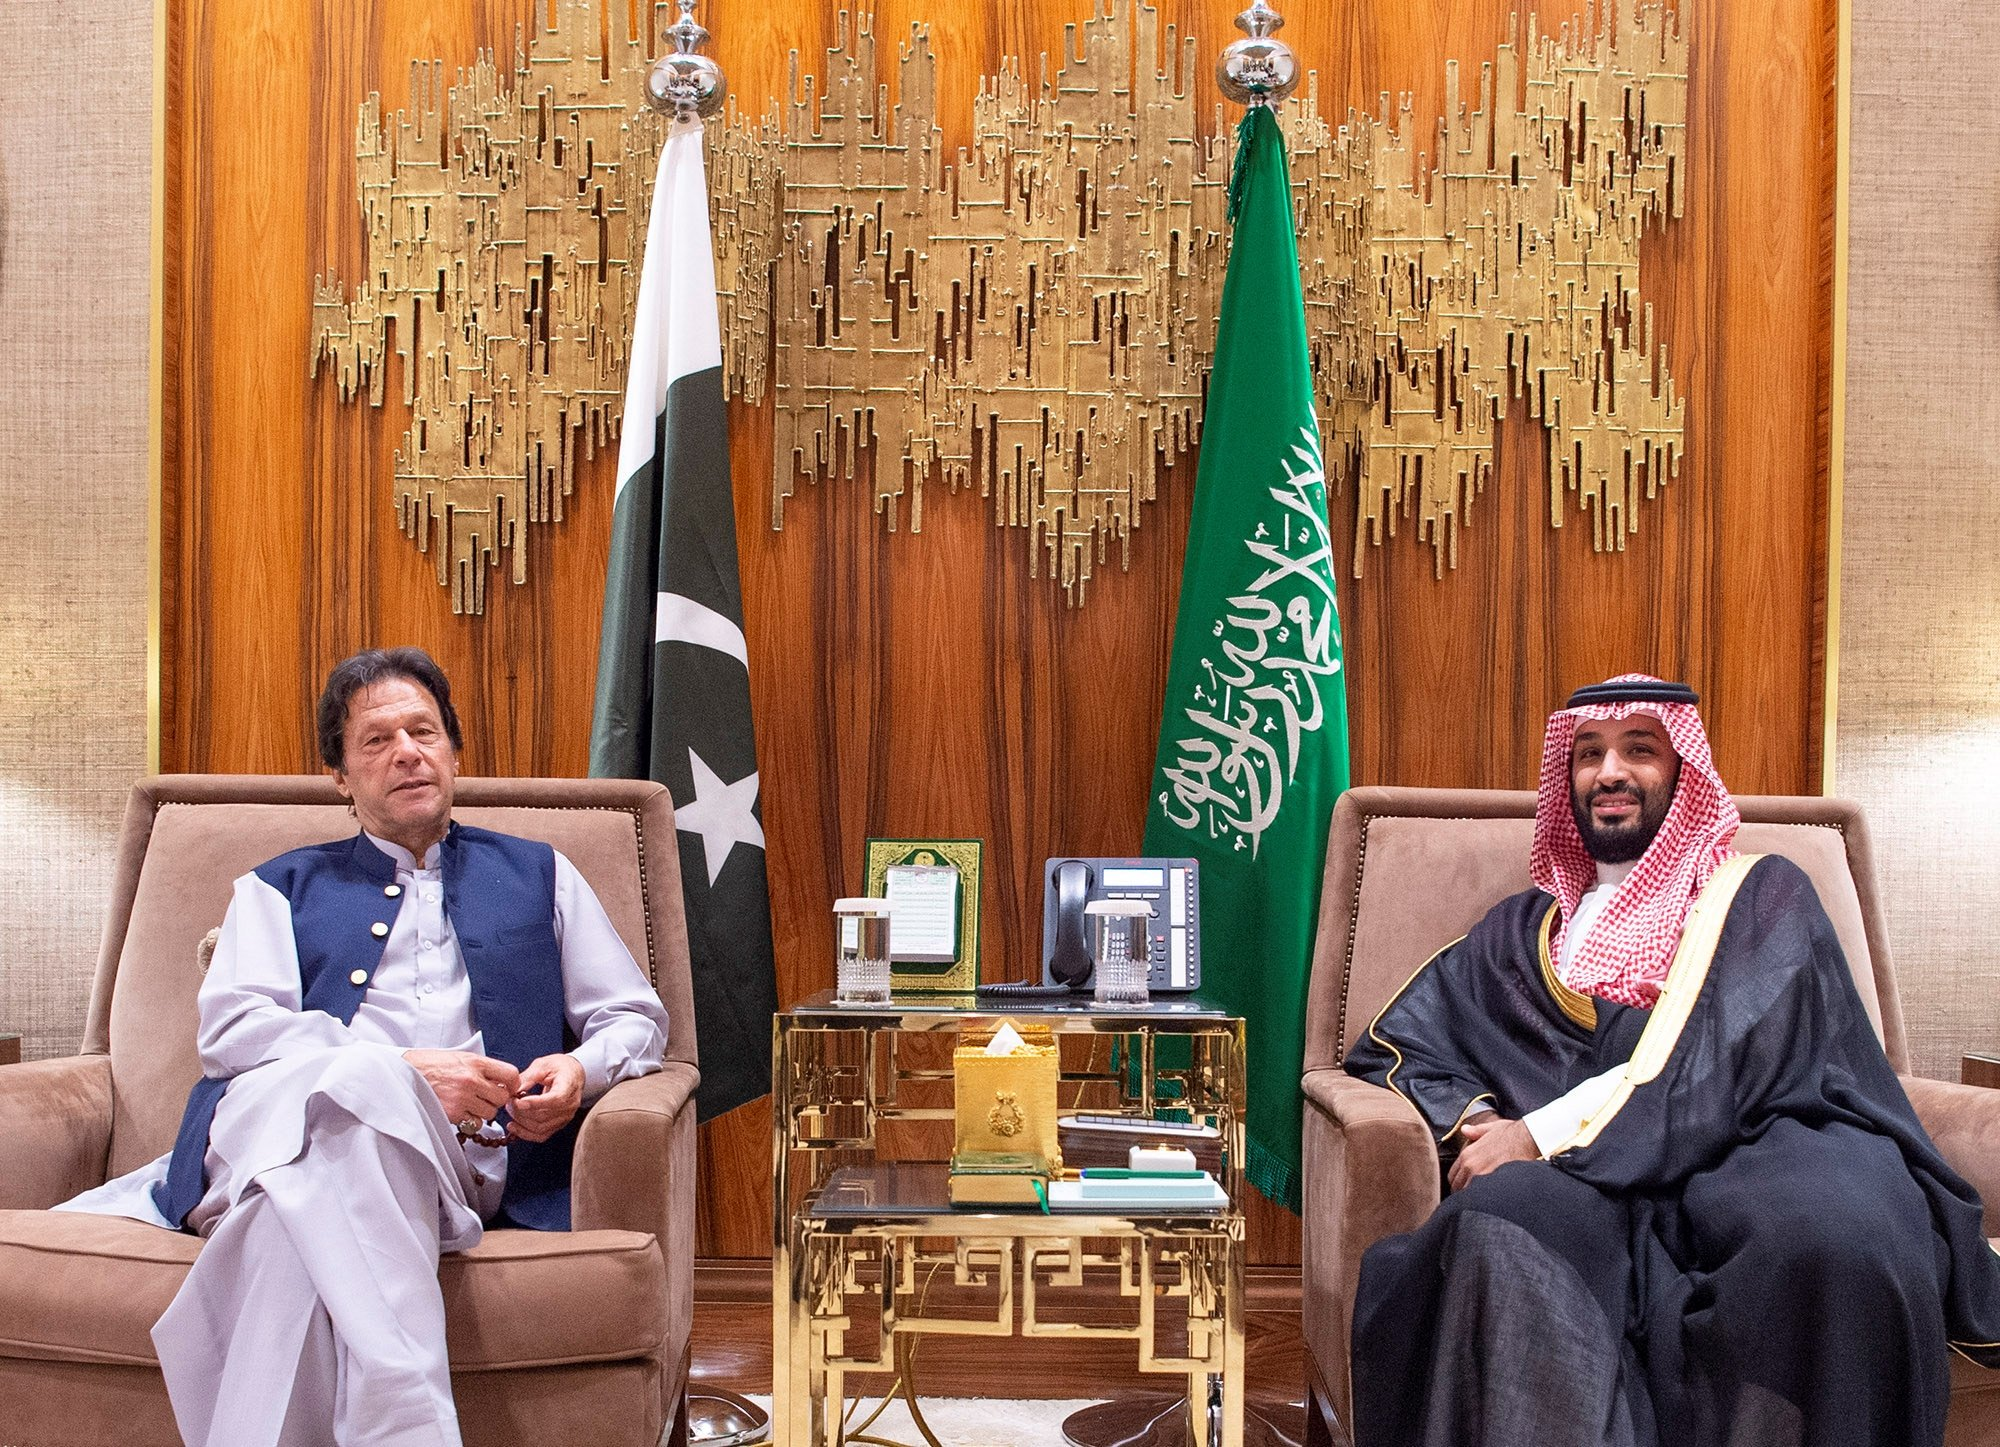 Pakistani PM Khan says he is under pressure to recognize Israel